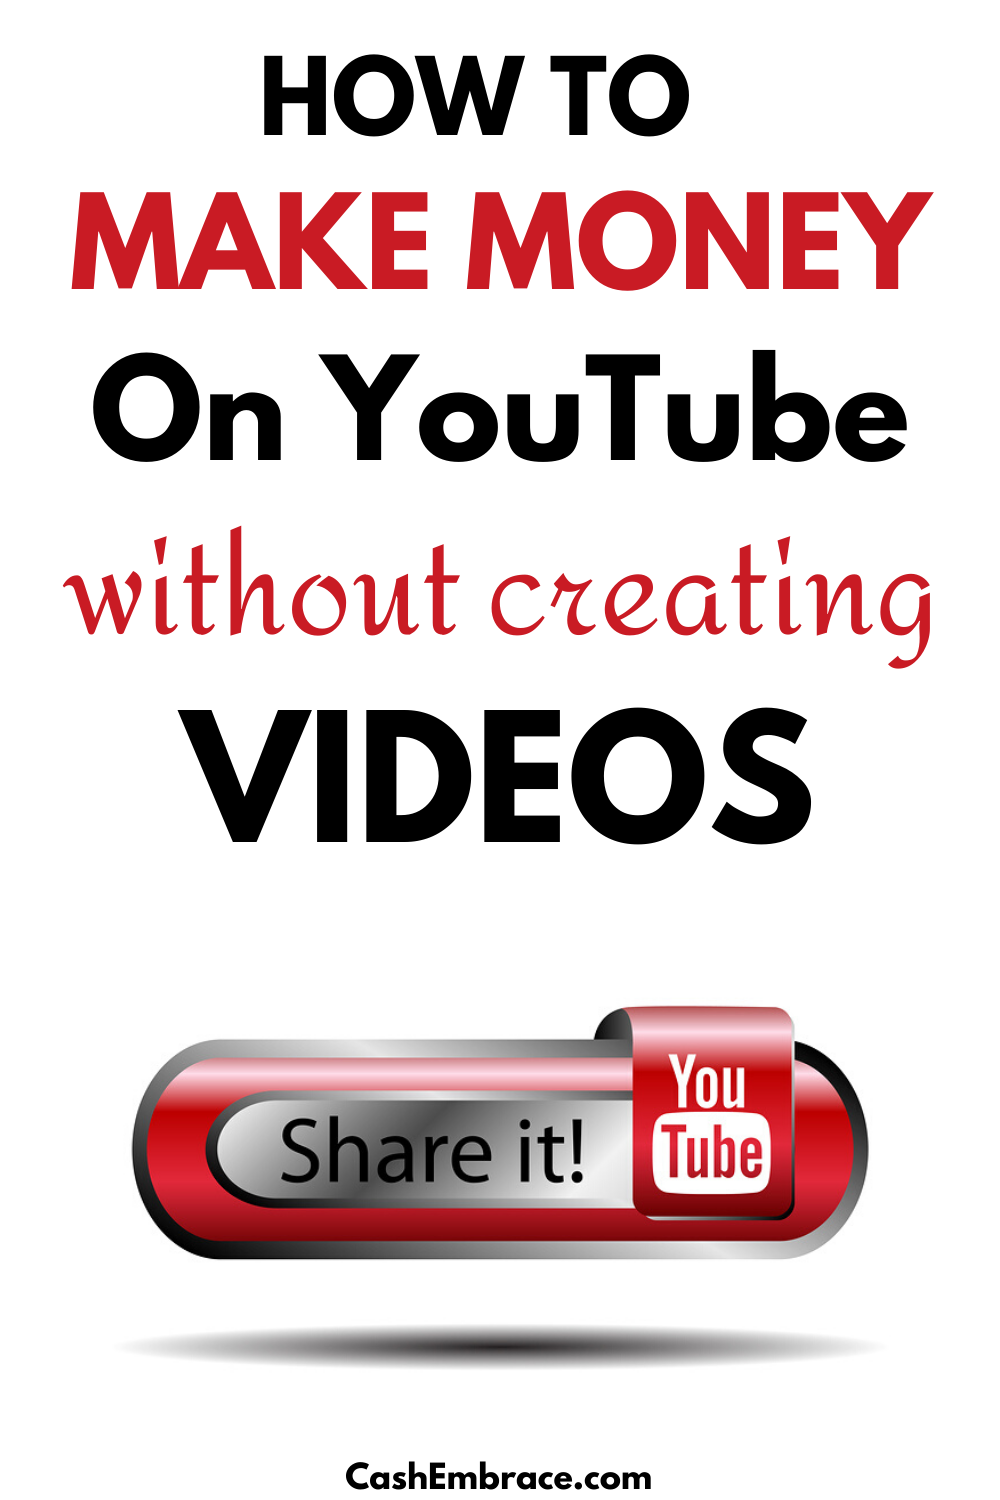 How To Get Money On Youtube Without Ads